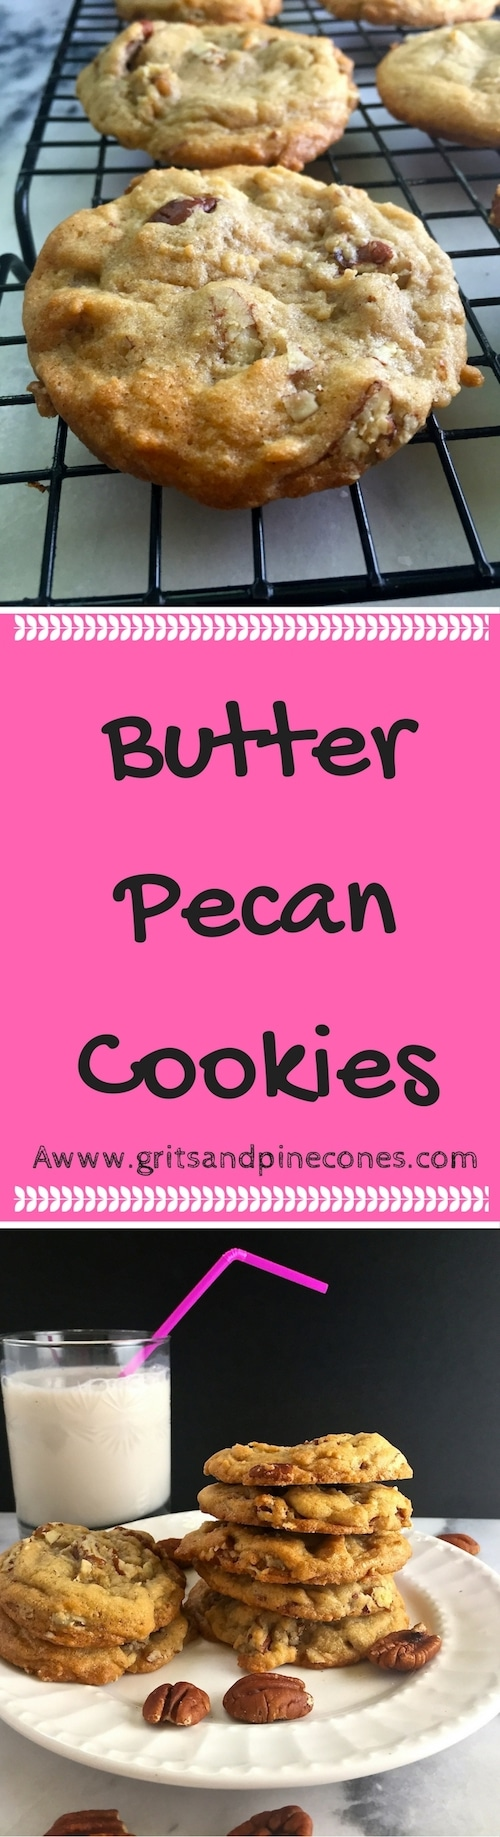 Are you looking for a great easy no-fail recipe for delicious cookies? Then try these delicious Butter Pecan Cookies which are filled with crunchy toasted pecans.